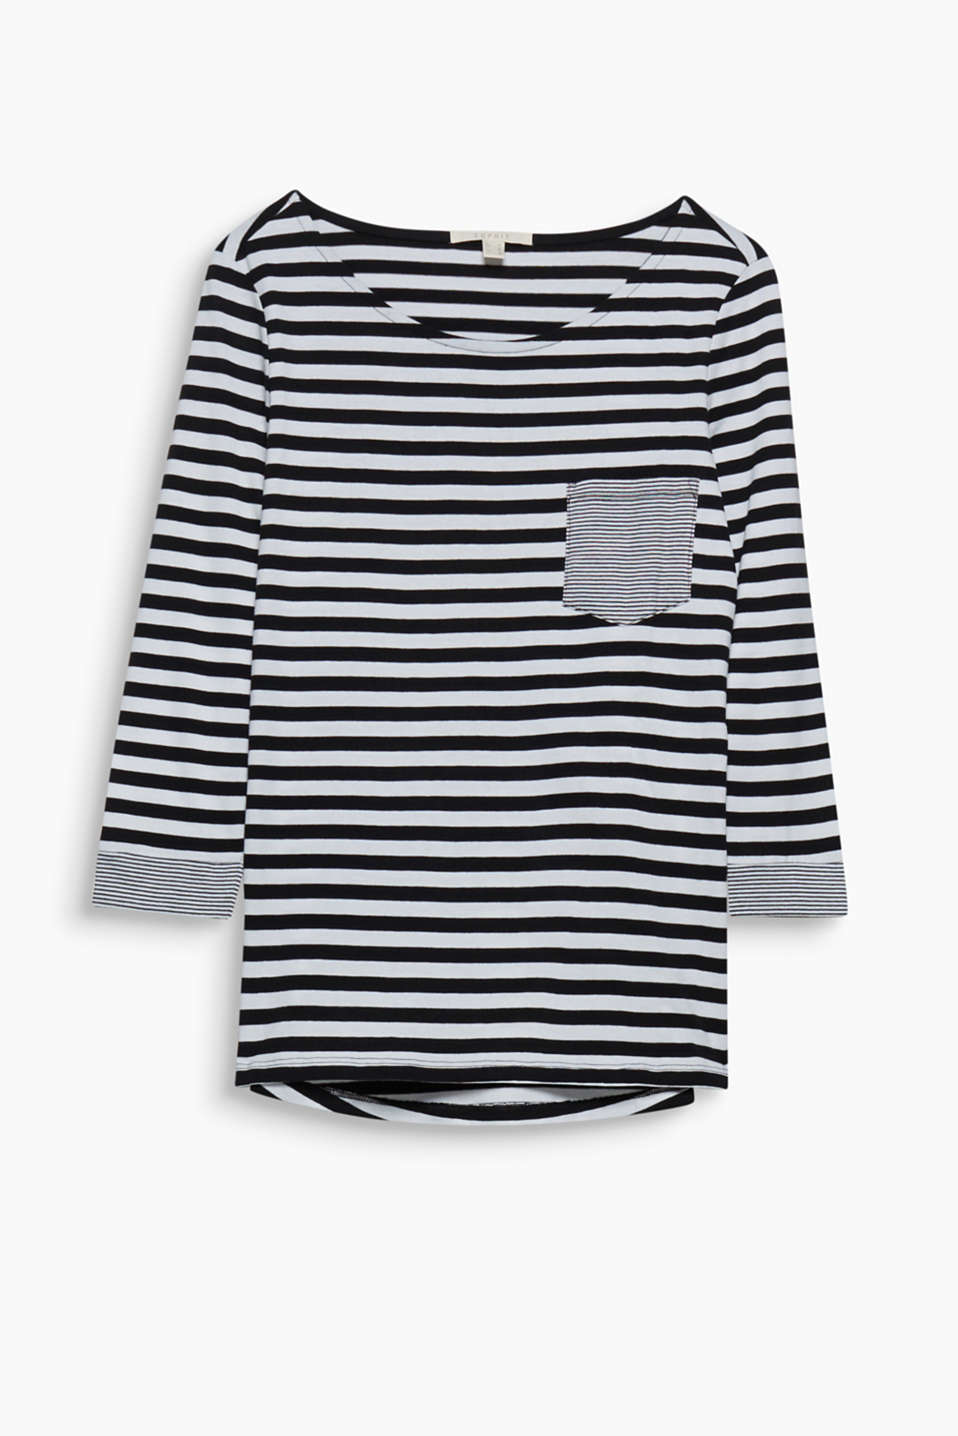 Contrasting fine stripes on the breast pocket and sleeve cuffs give this top a new trend look